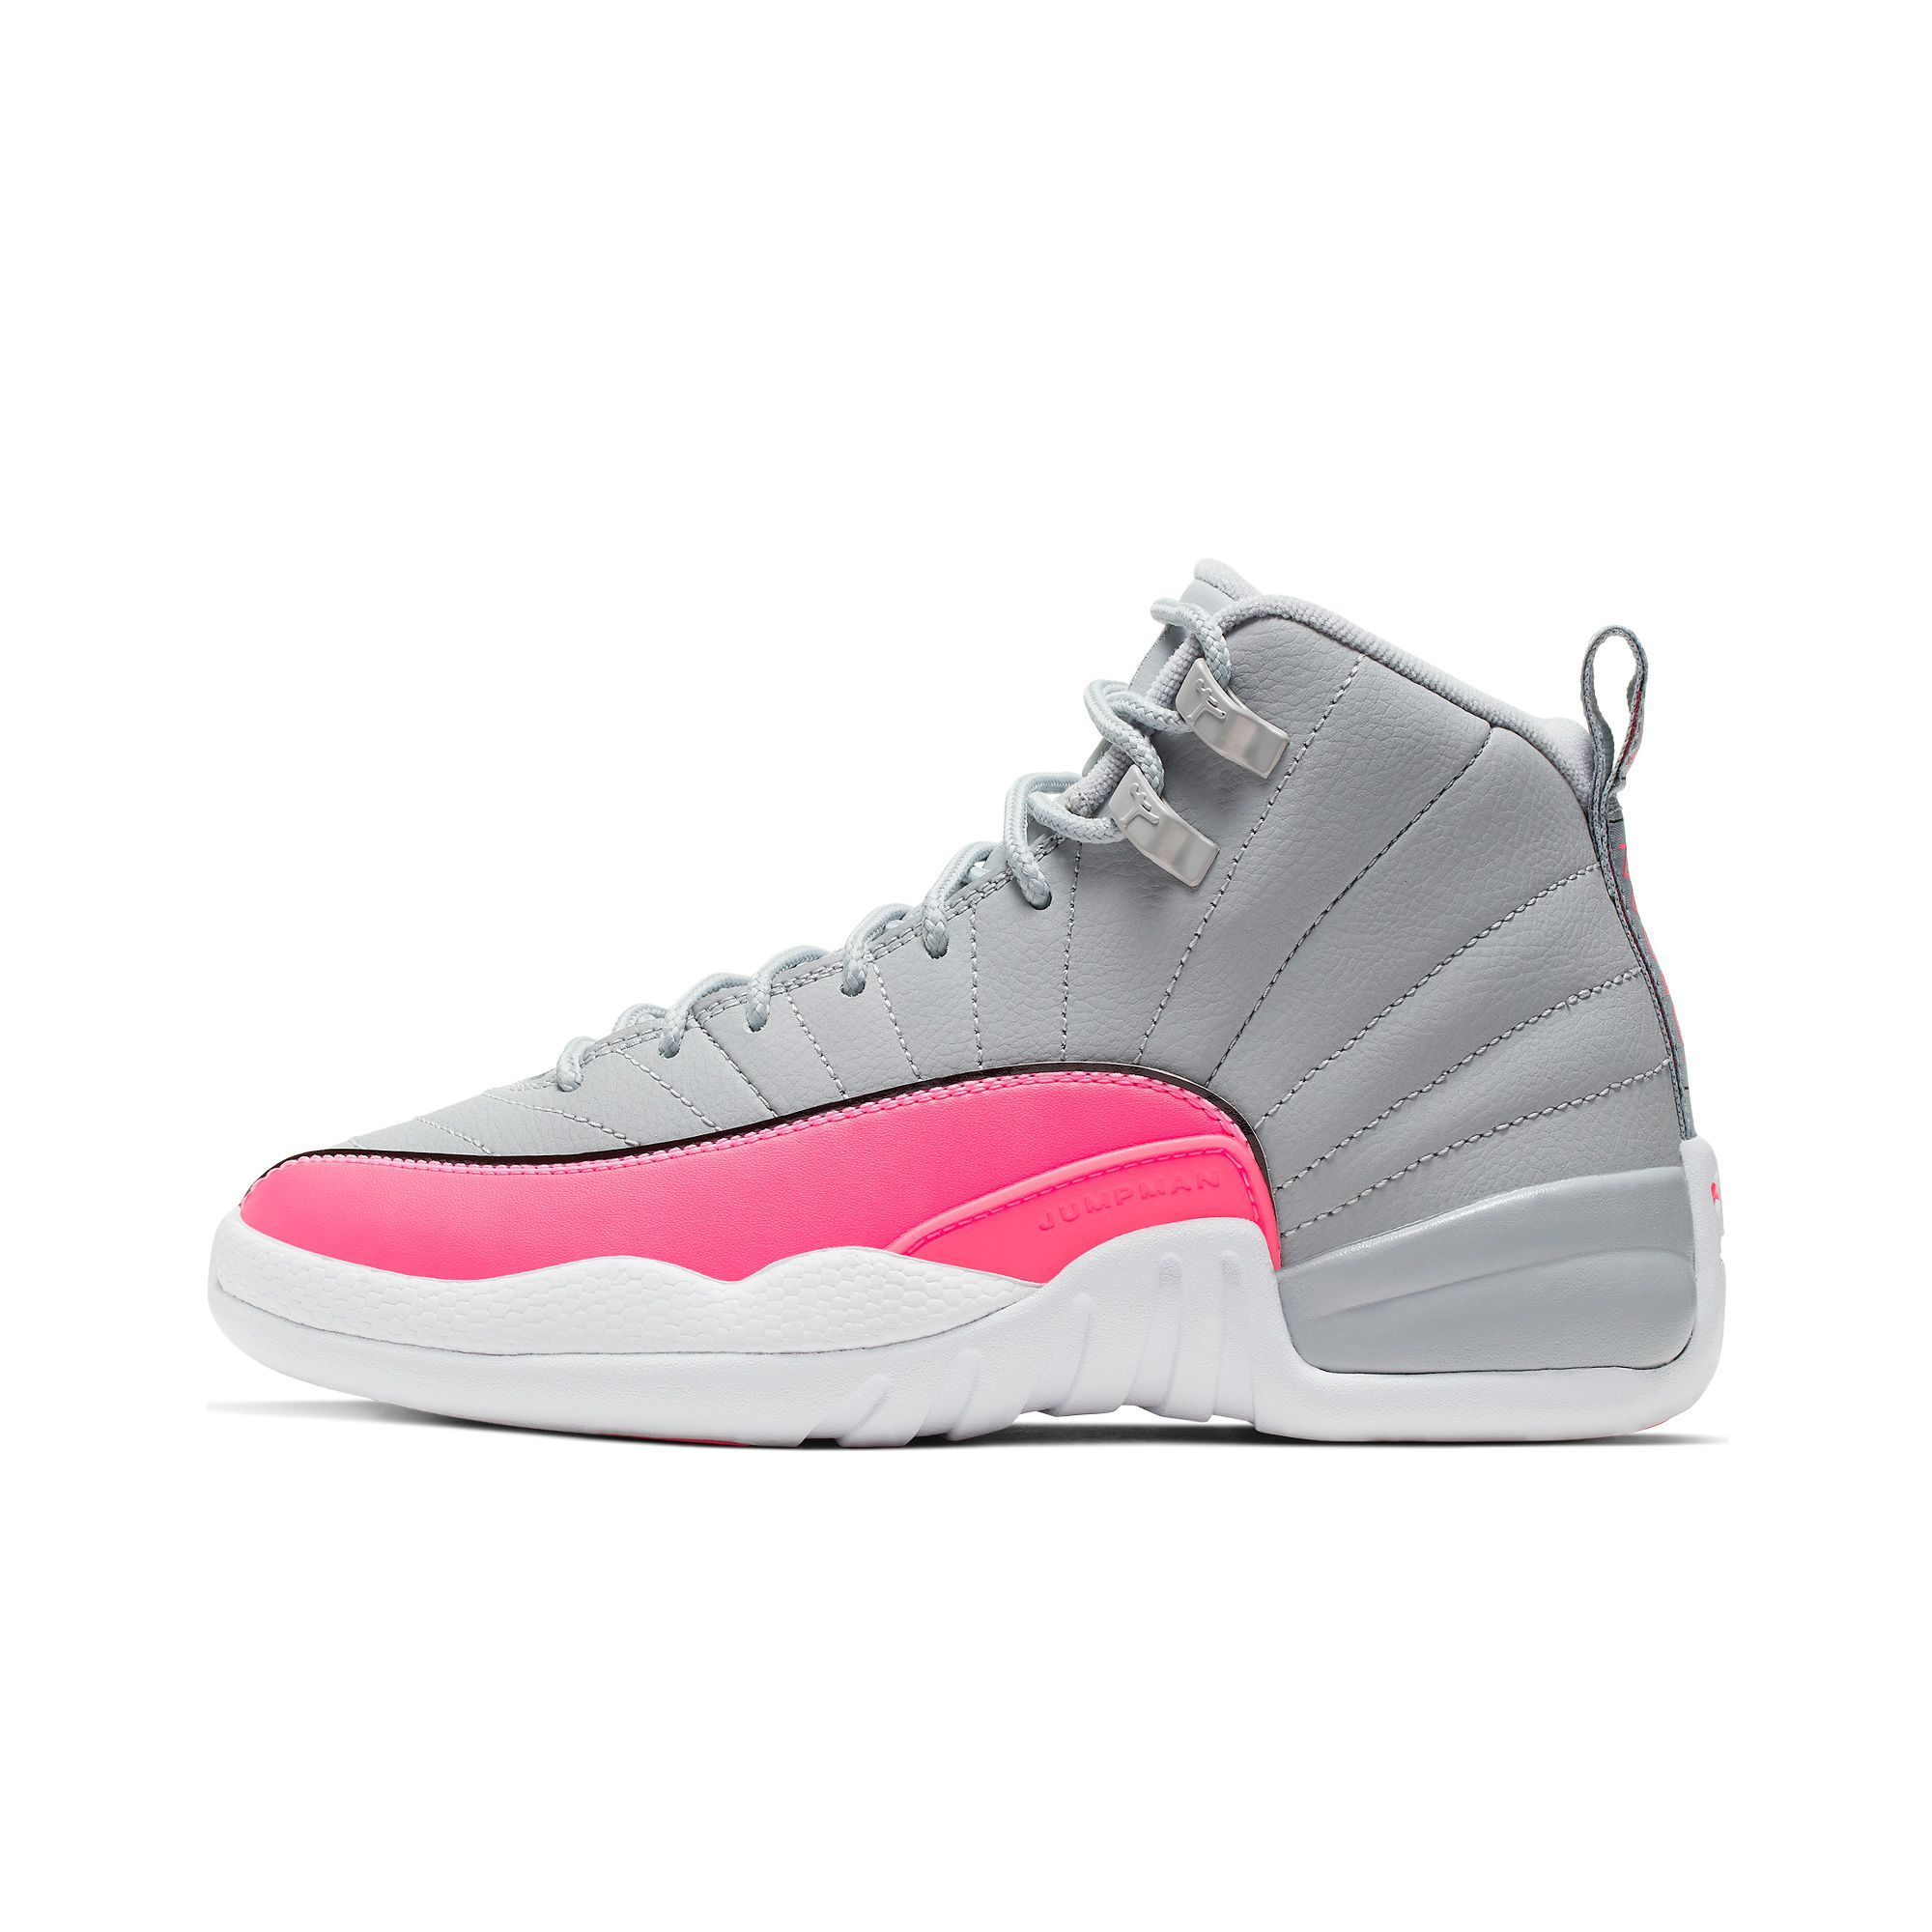 Pin by La'zyriah Brayboy on Zy best shoes | Pink and gray jordans ...